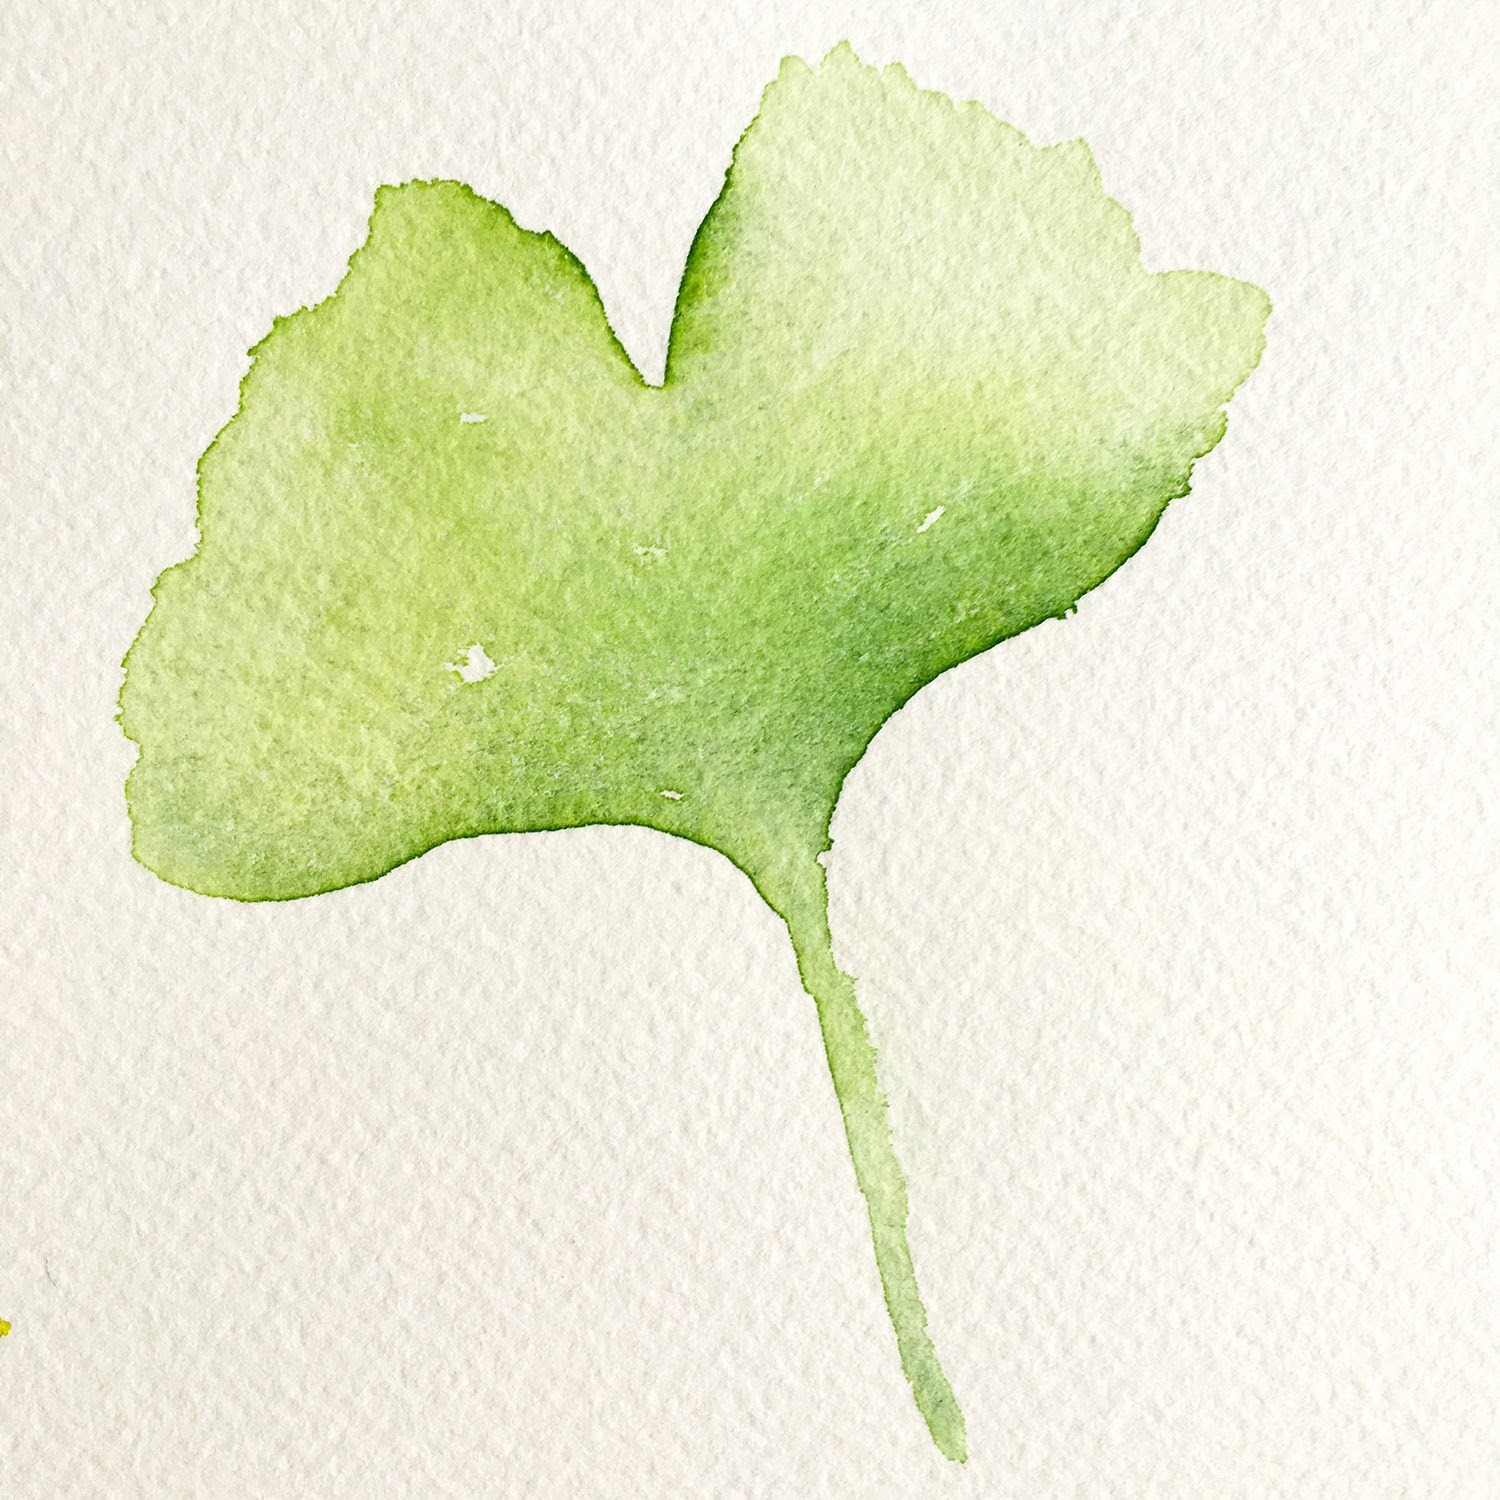 Watercolor Painting Ginkgo Biloba Leaves - YouTube